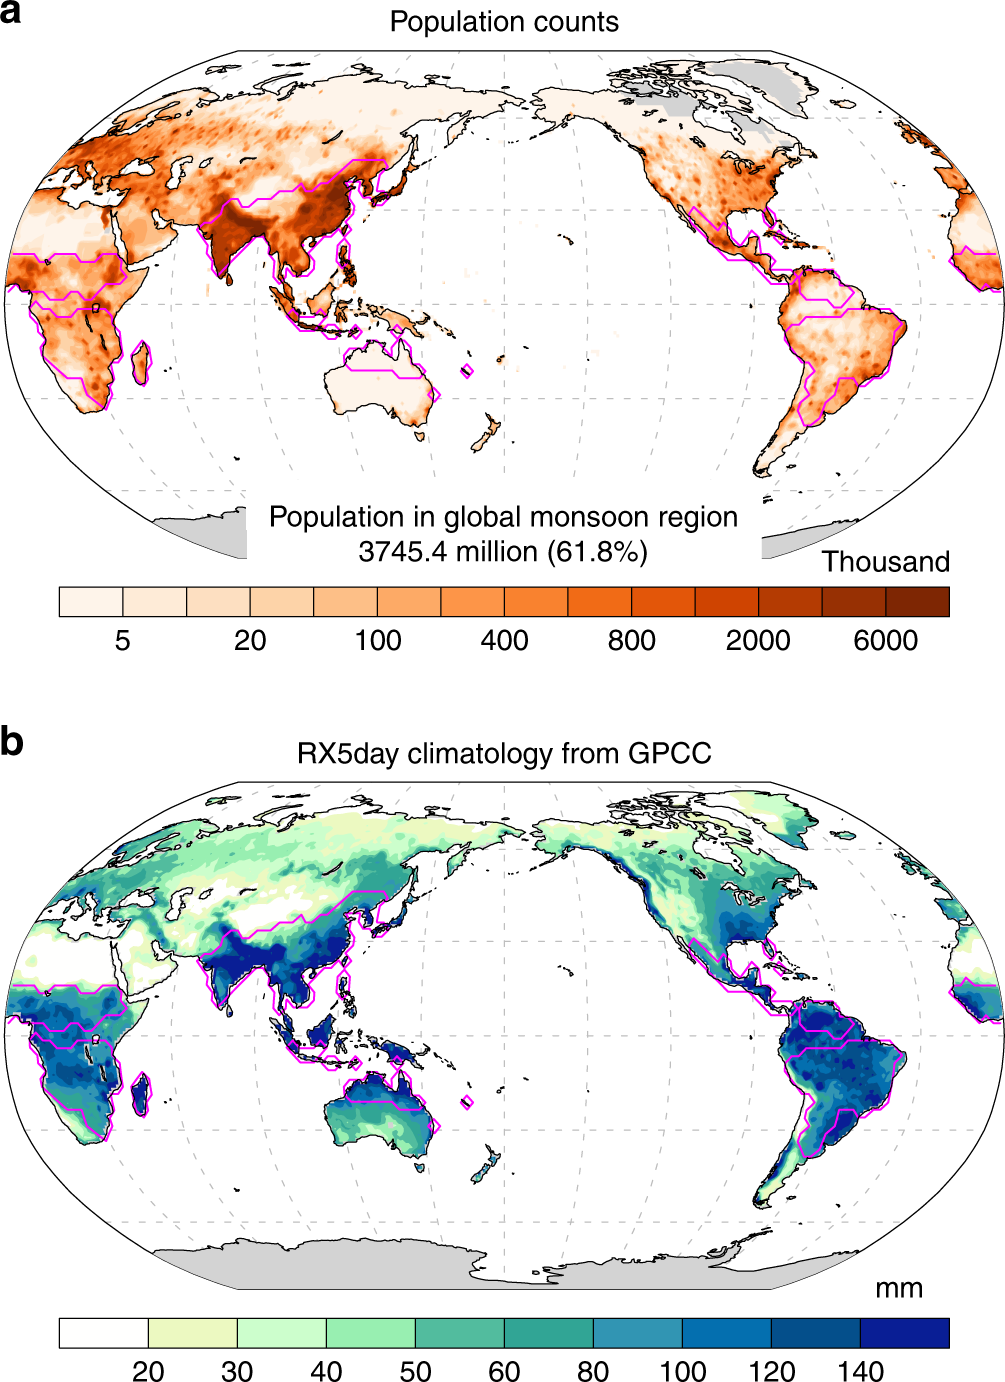 Reduced exposure to extreme precipitation from 0.5 °C less ... on xkcd map projections, global city map, 2012 presidential map projections, global map art, different map projections, world map projections, bad map projections, global climate change map, interactive map projections, unusual map projections, earth map projections, united states map projections, global rainfall map, four map projections, global map of the world, 2016 presidential election map projections, science map projections, climate projections, global ice increasing, rising water levels projections,